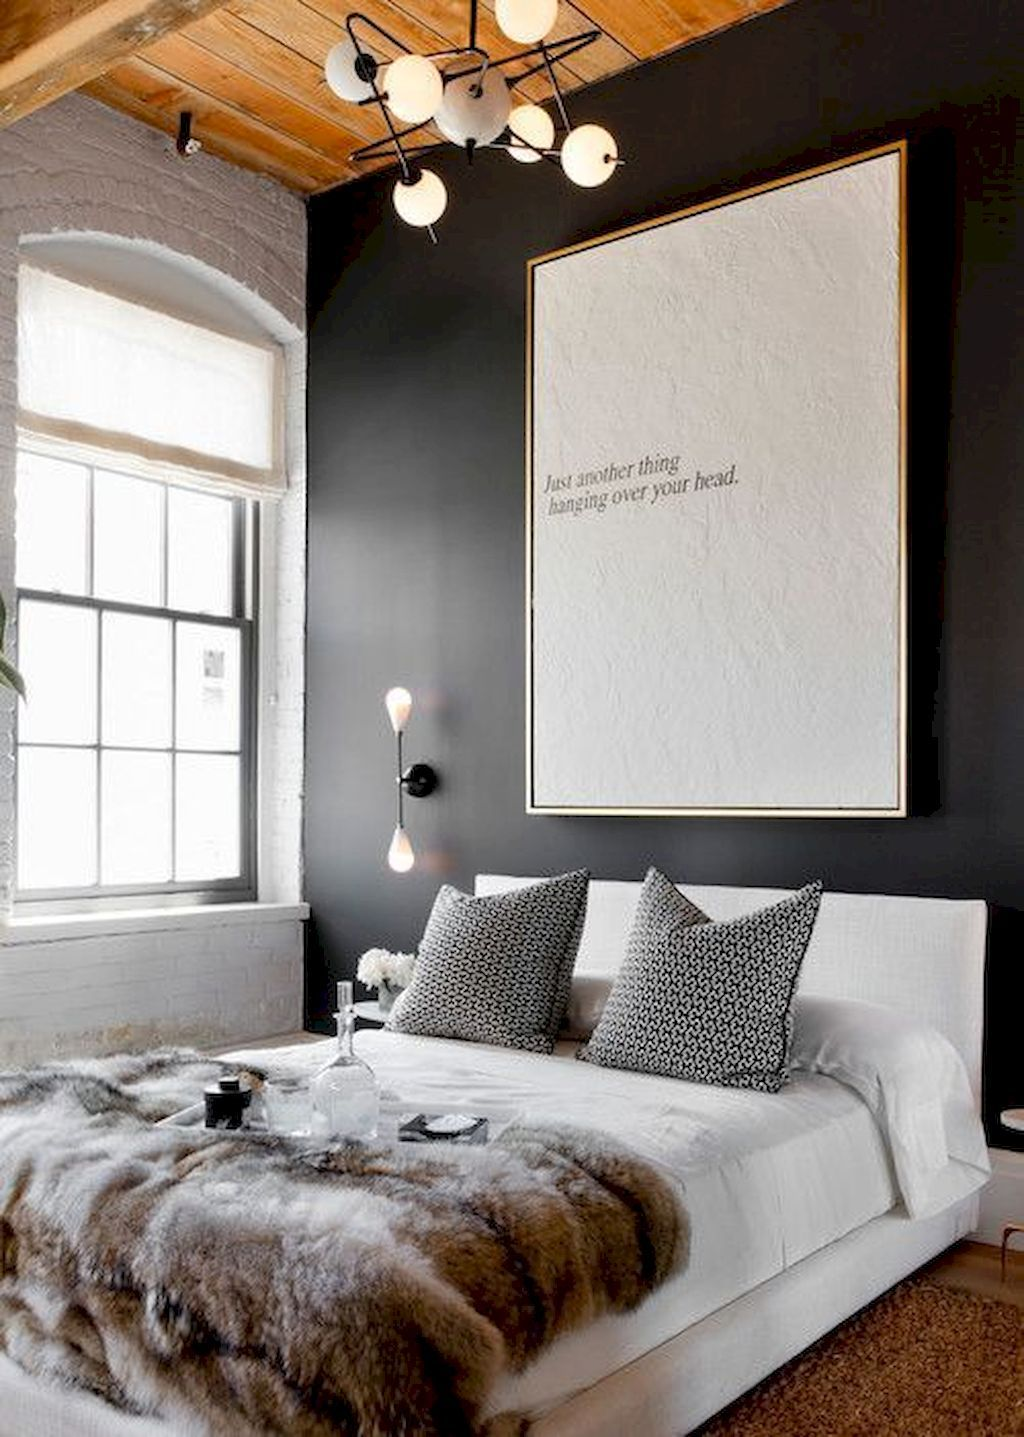 Nice 60 Cozy and Stylish Scandinavian Bedroom Decor Ideas https     Nice 60 Cozy and Stylish Scandinavian Bedroom Decor Ideas  https   homstuff com 2017 07 13 60 cozy stylish scandinavian bedroom decor  ideas